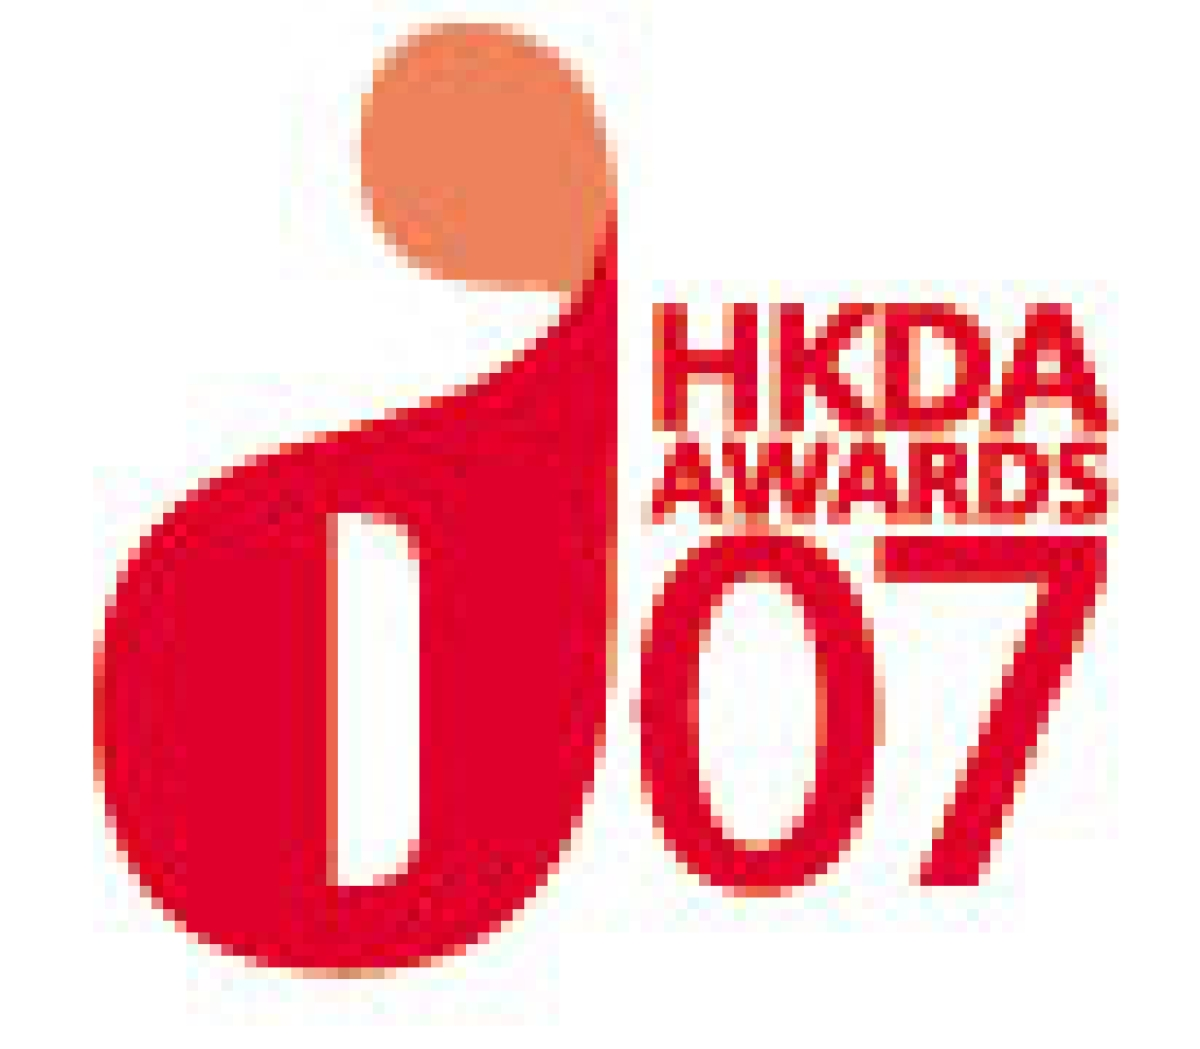 HKDA Awards '07 calls for entries from APAC region